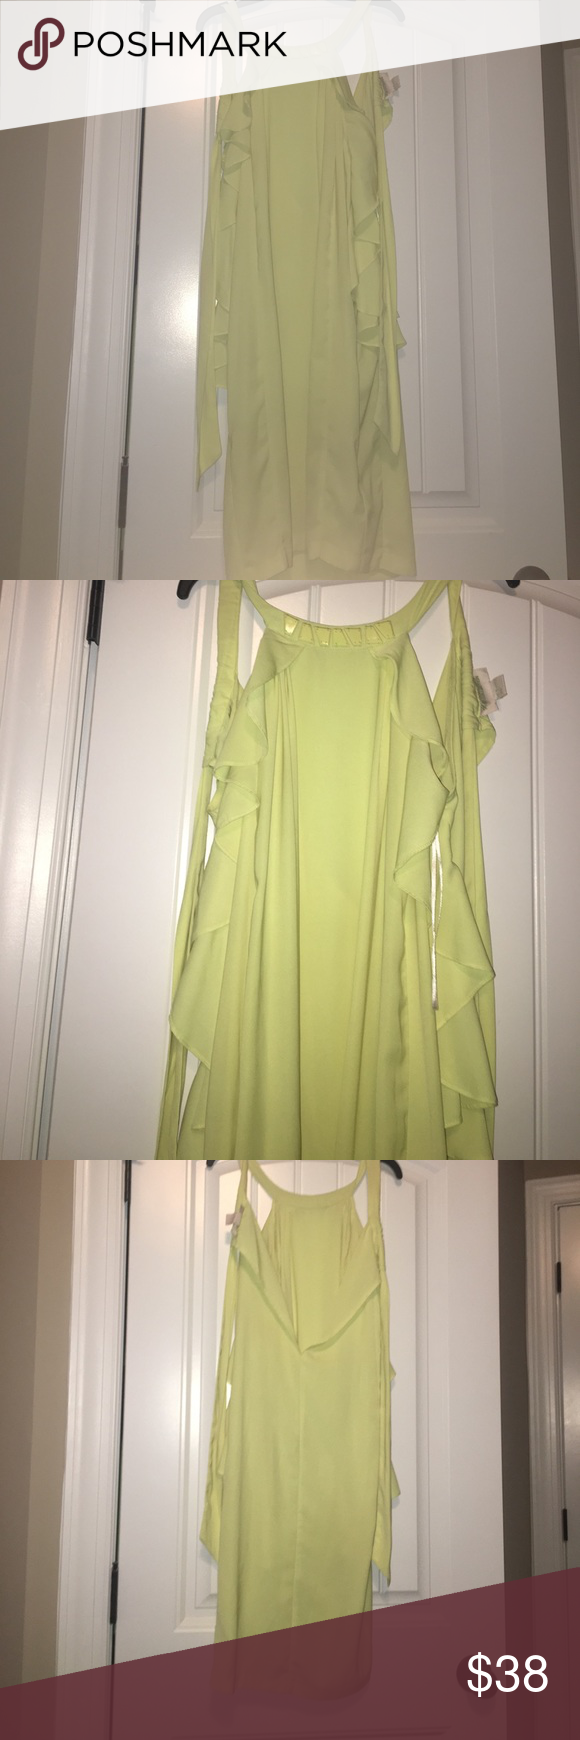 H&M Conscious Collection Vanessa Paradis | D, H m dress and Yellow ...